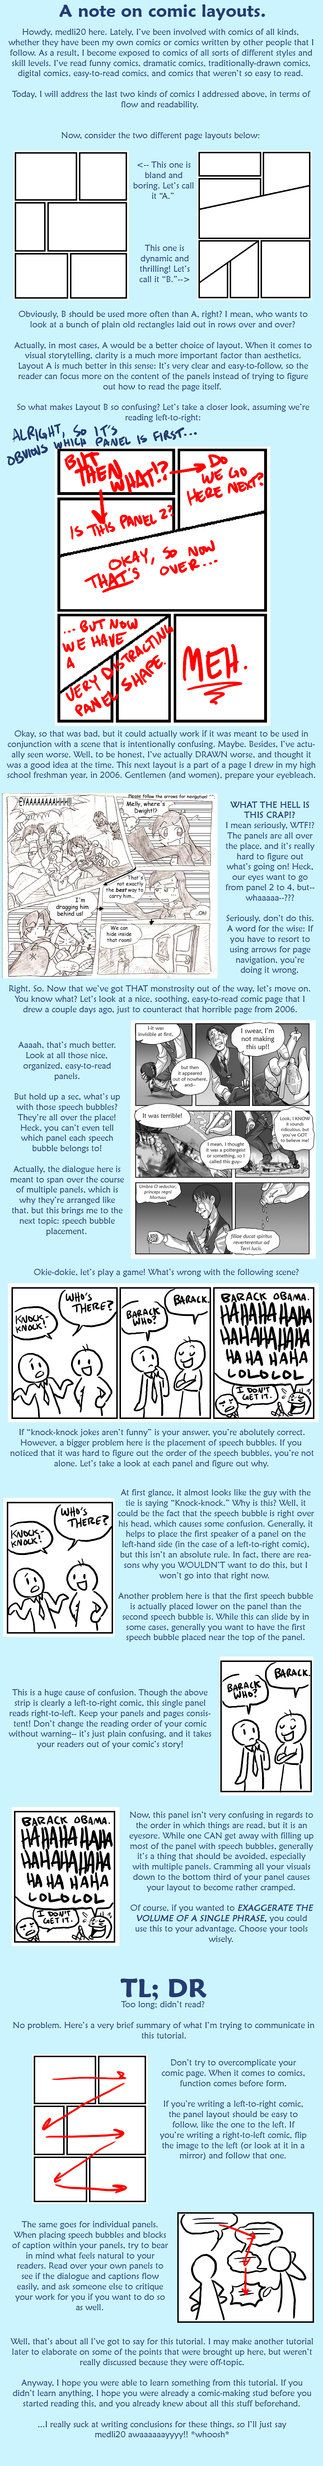 Tutorial: comic layouts by =medli20 on deviantART. Recommended by Andrea Beaty, author of Attack of the Fluffy Bunnies.